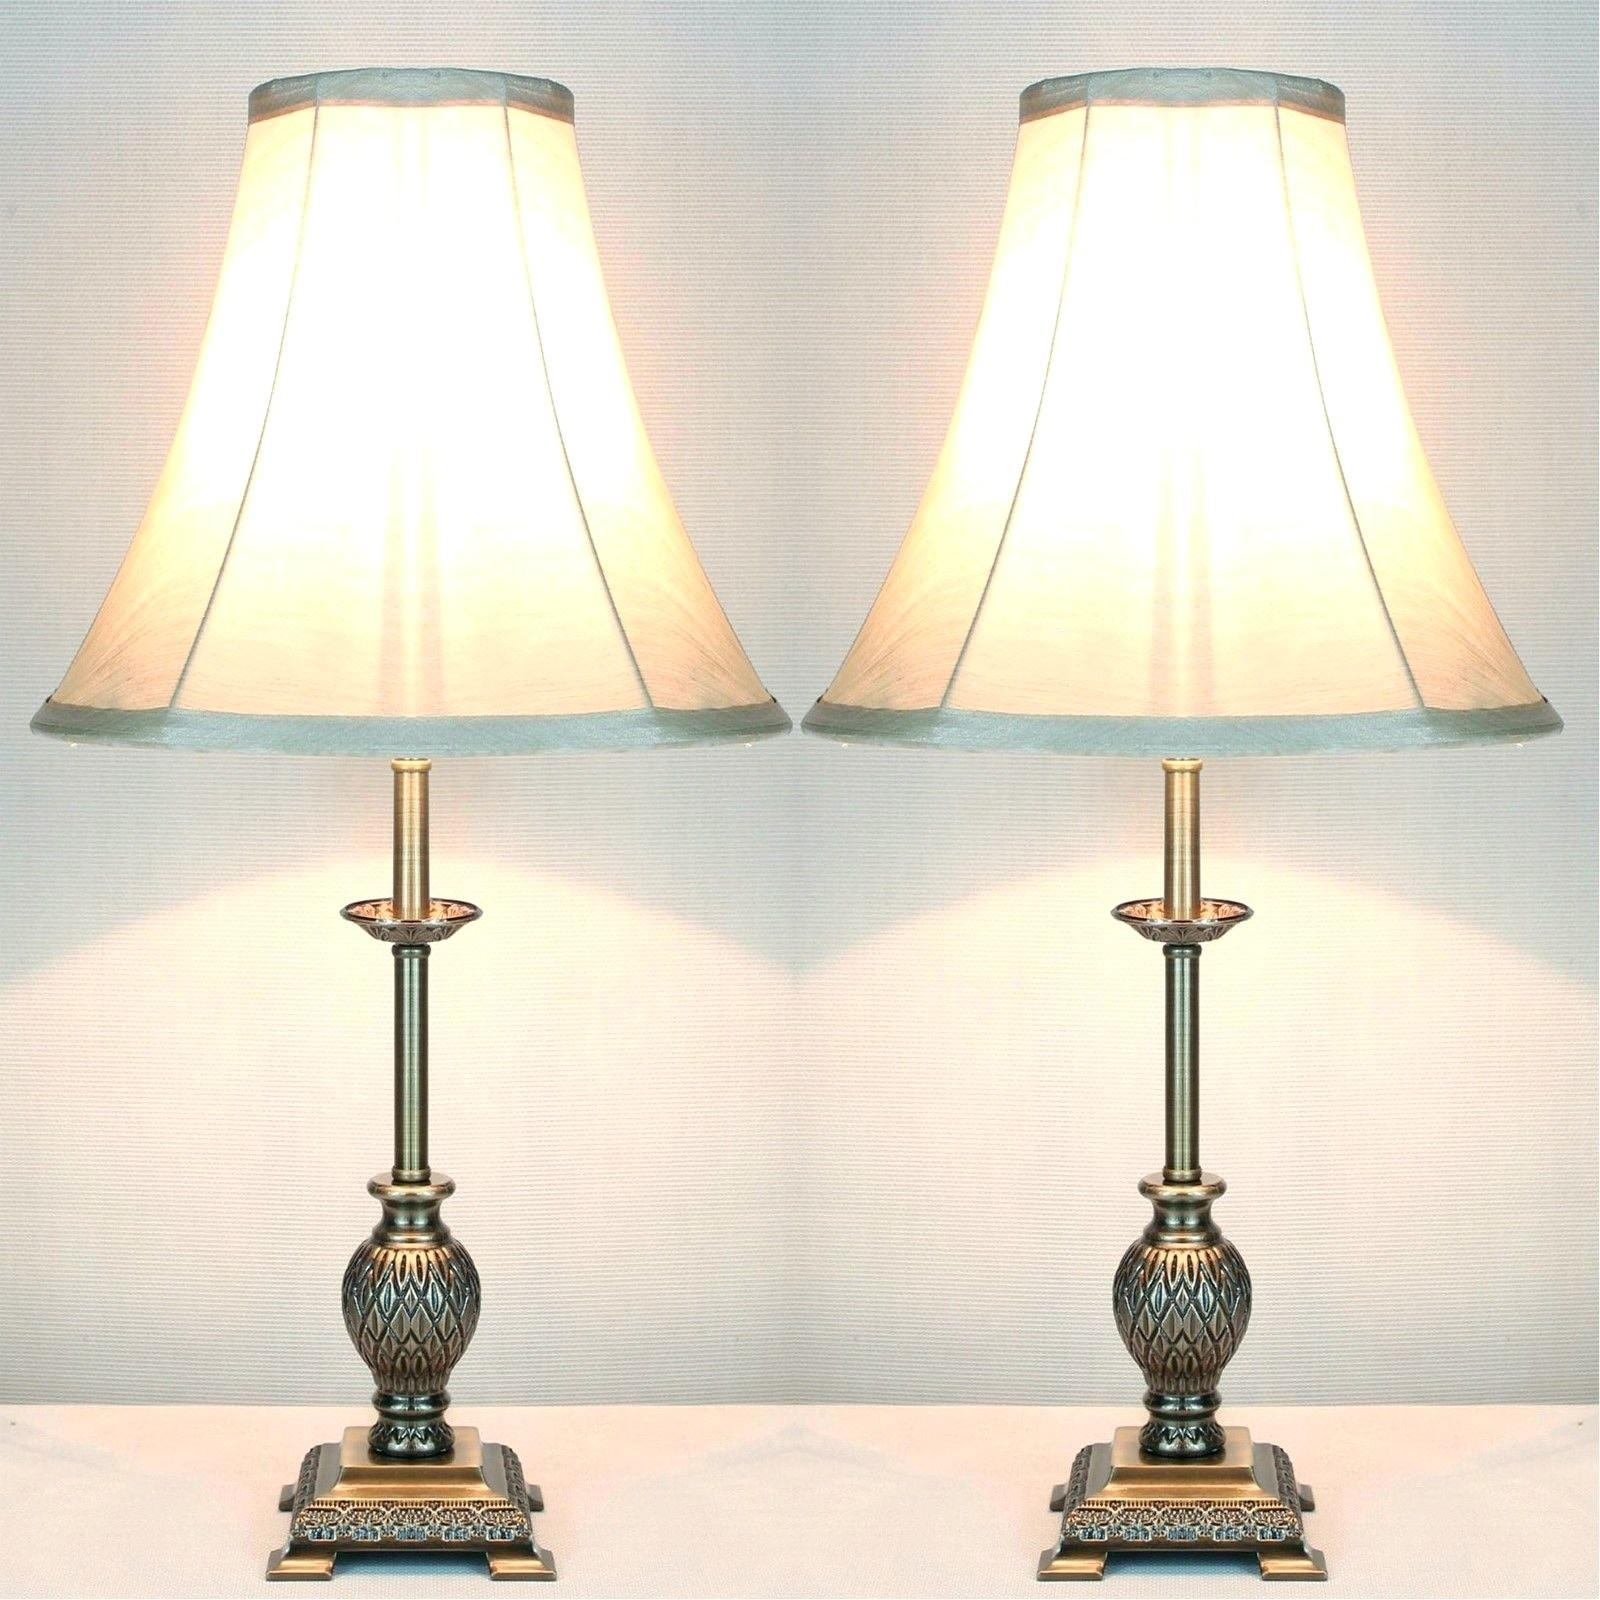 Top Antique White Table Lamps Ideas Home Lighting